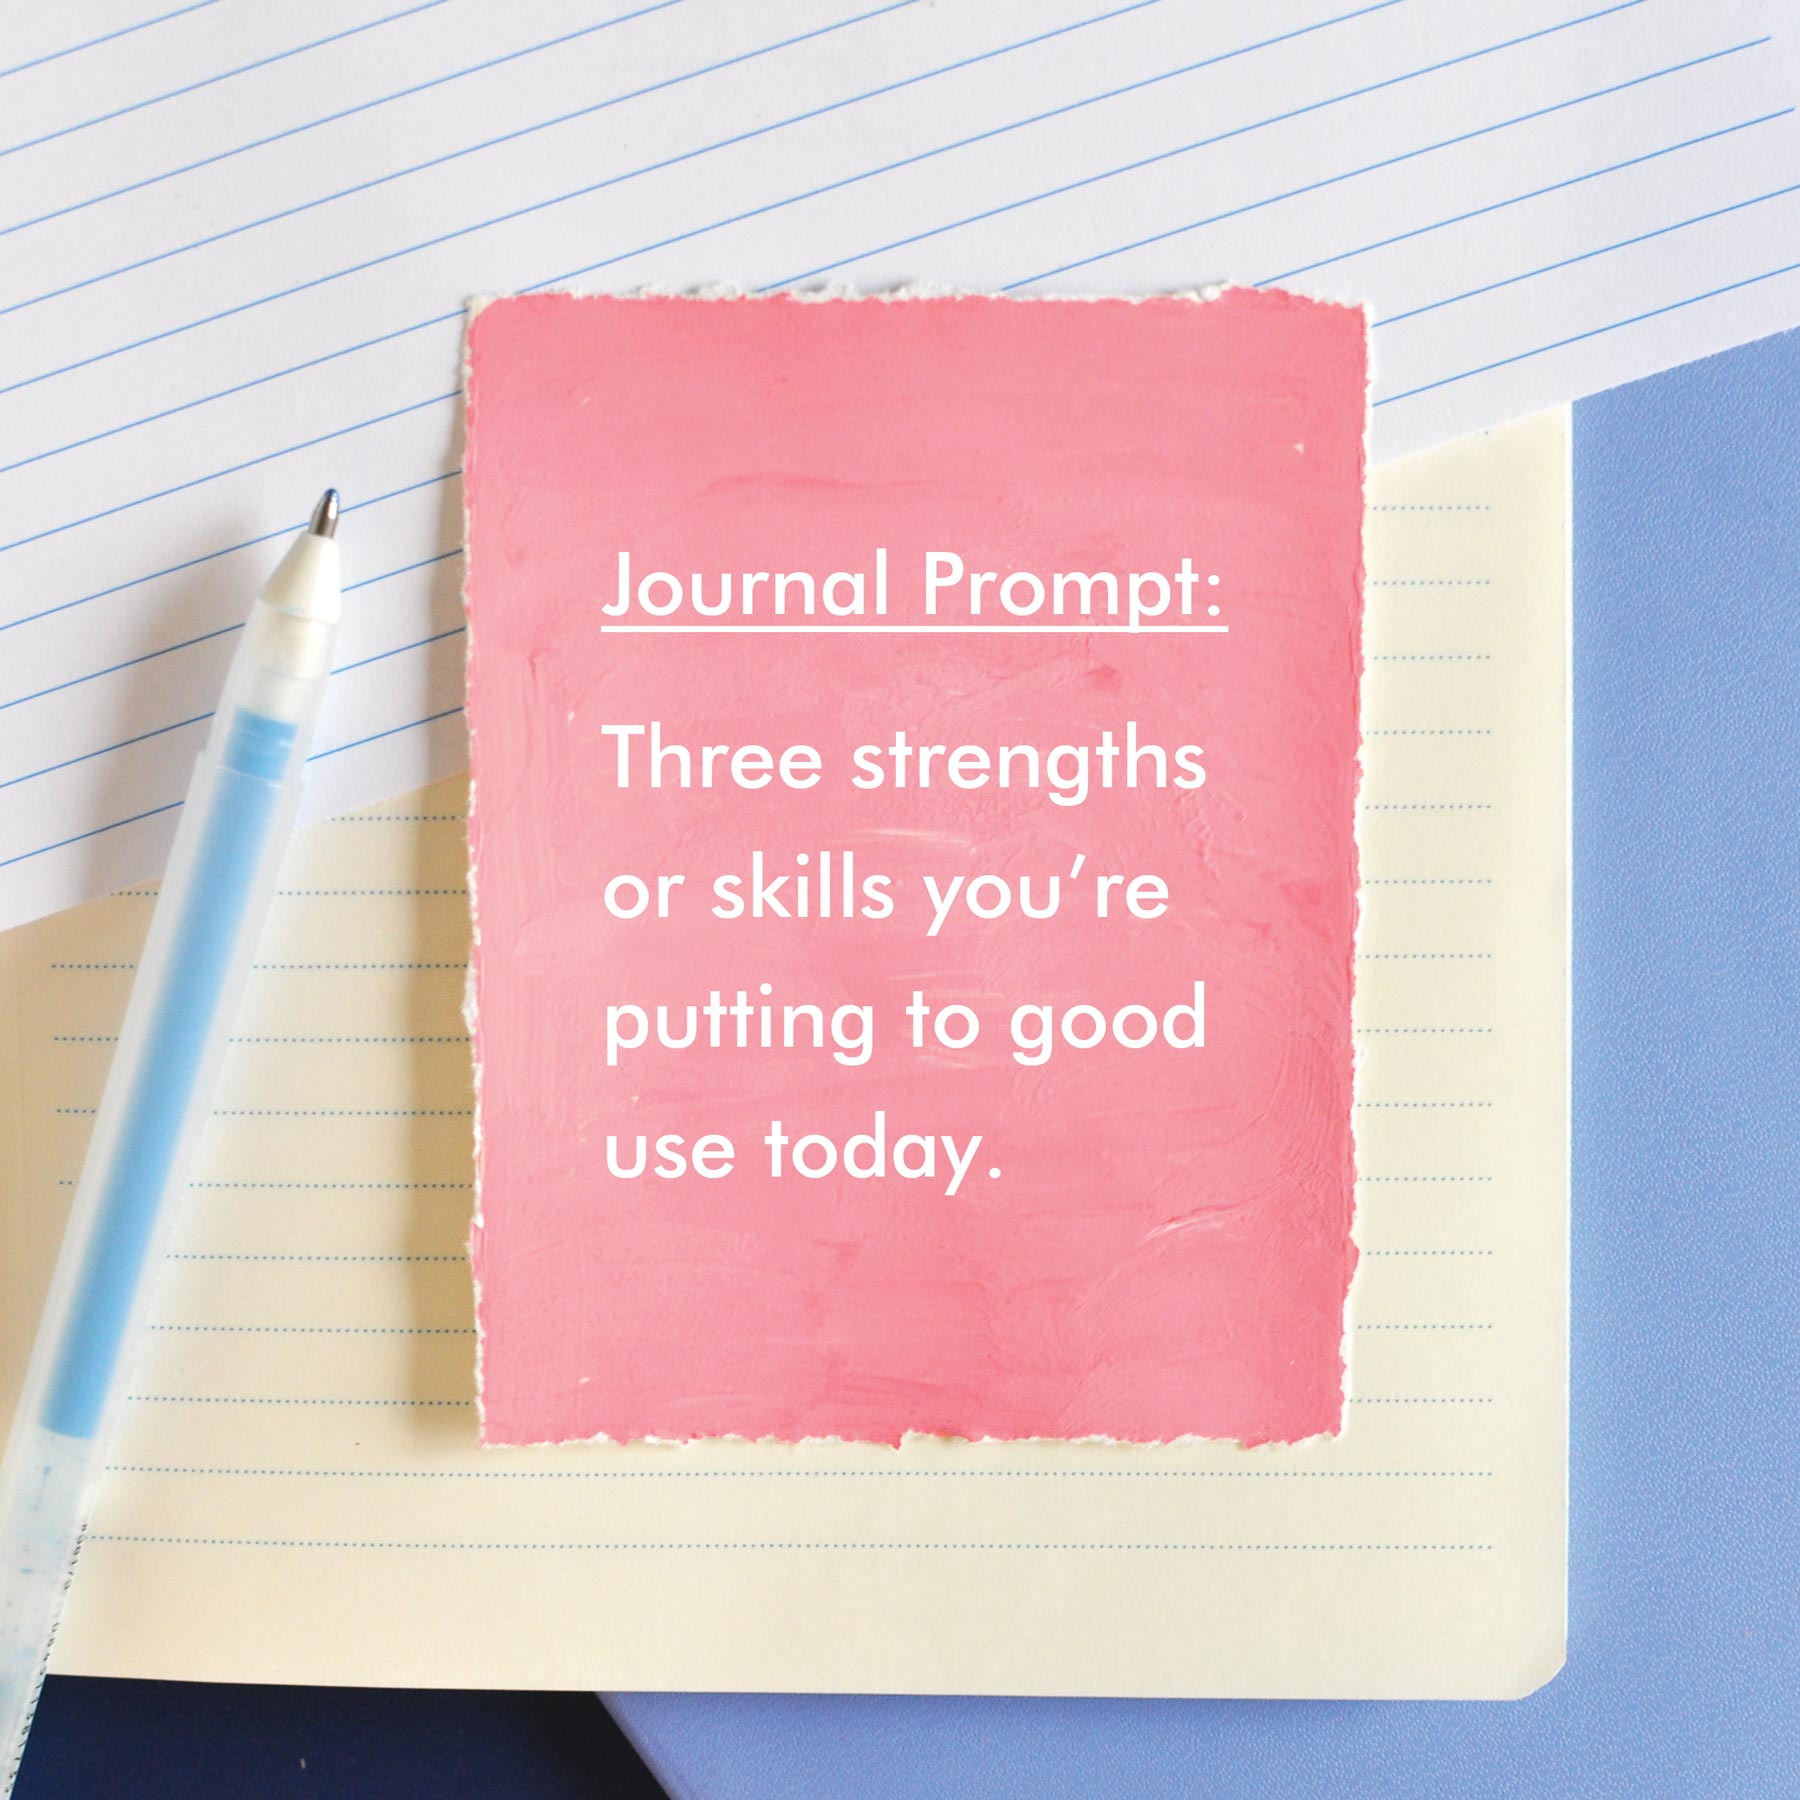 27-03-2018---Printable-Journal-prompt-by-Christie-Zimmer.jpg